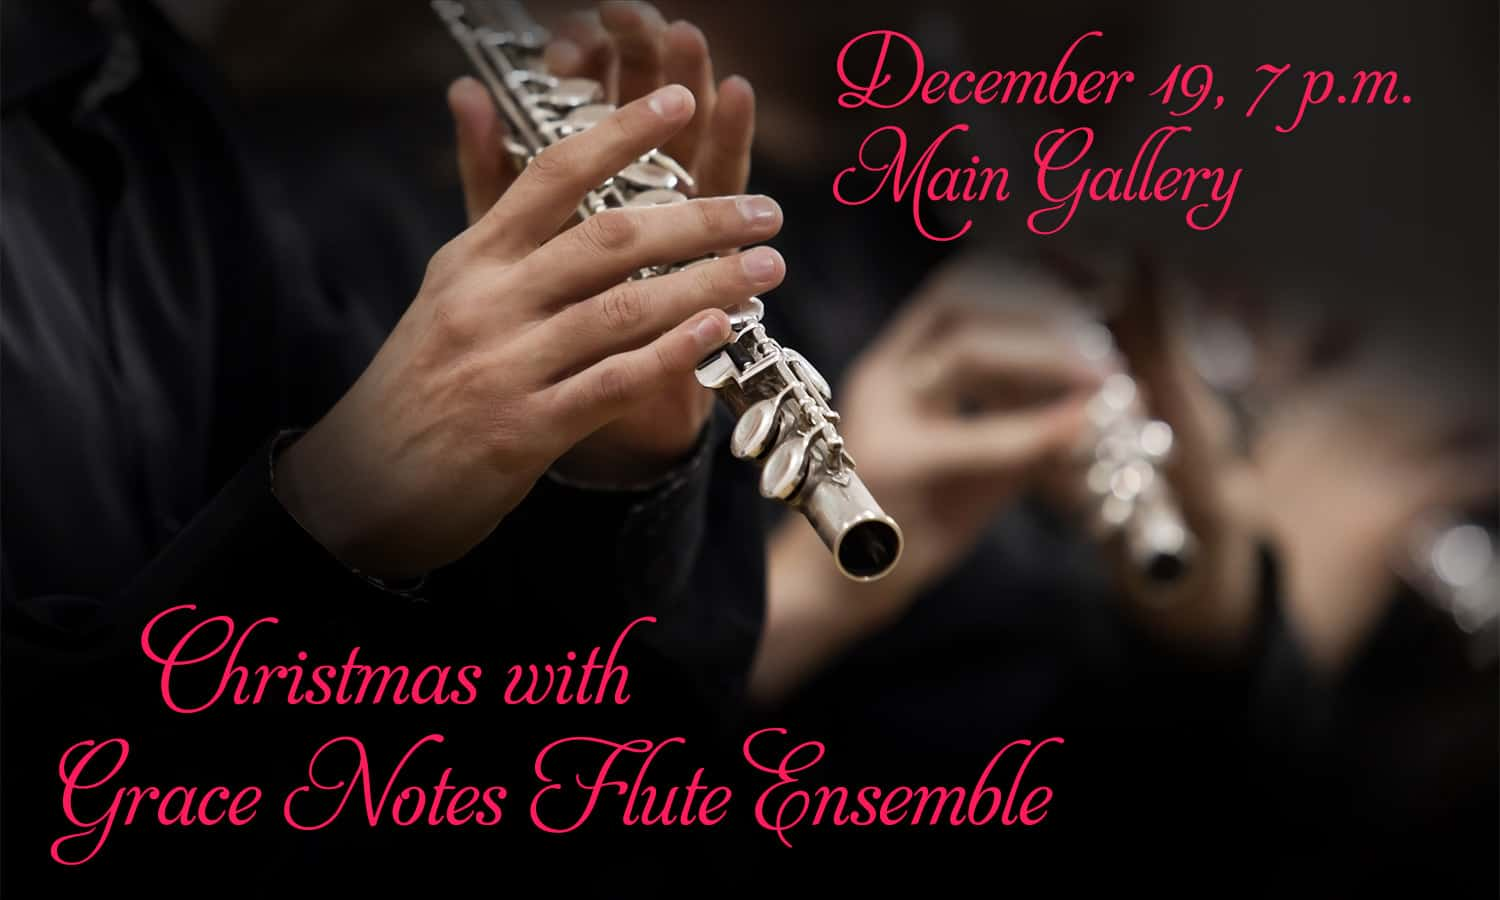 Christmas with Grace Notes Flute Ensemble